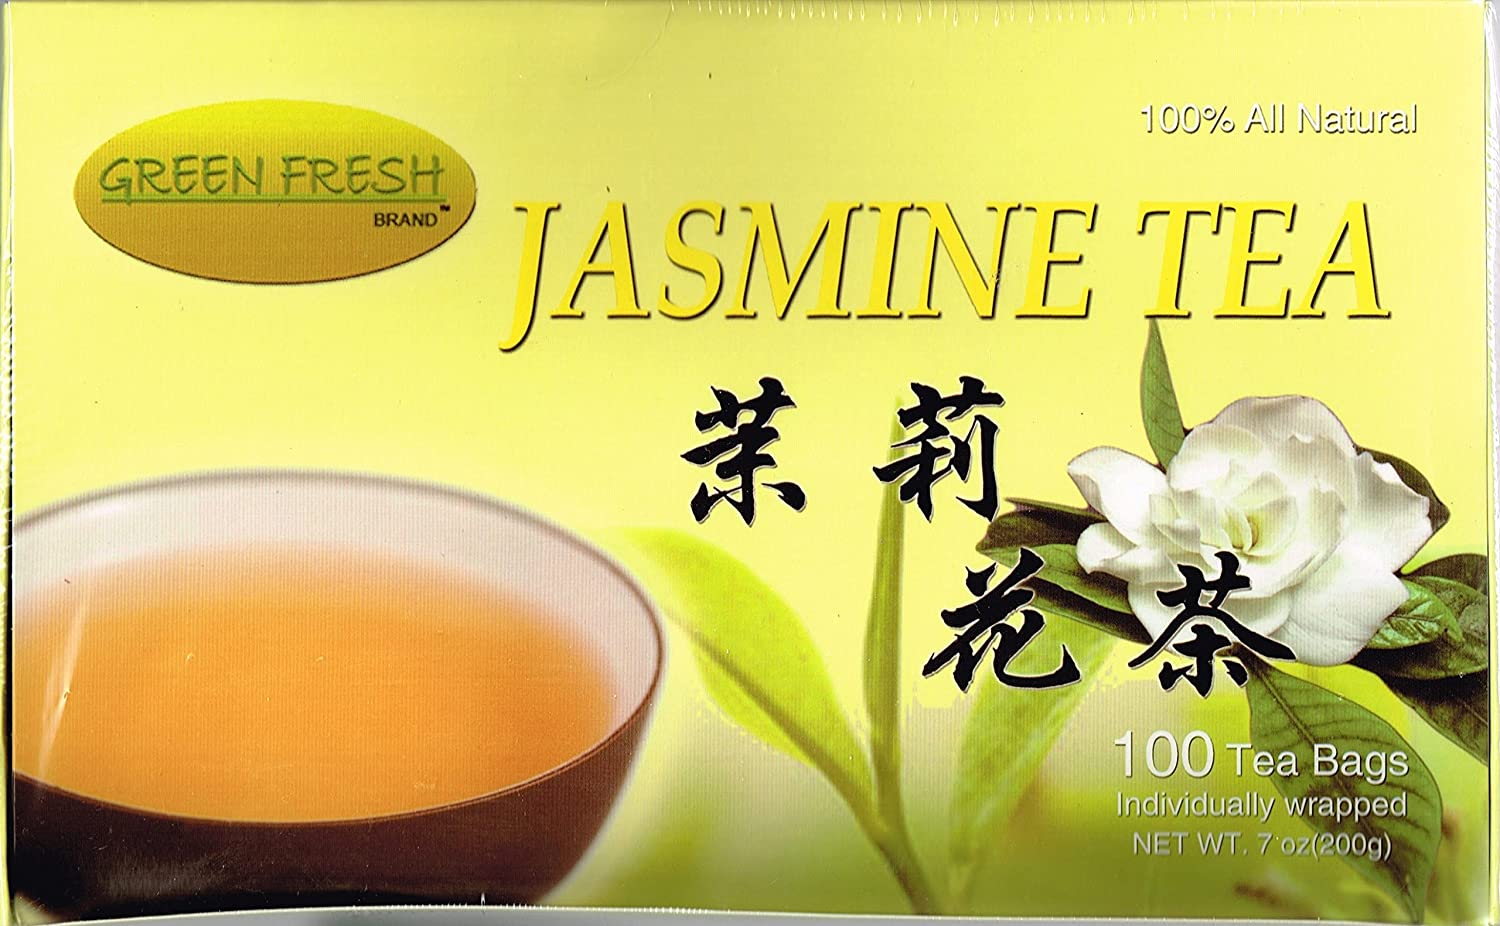 Green Fresh Jasmine Sale Special Price Tea 100% All 100 Natural Bags I Fixed price for sale 200 g